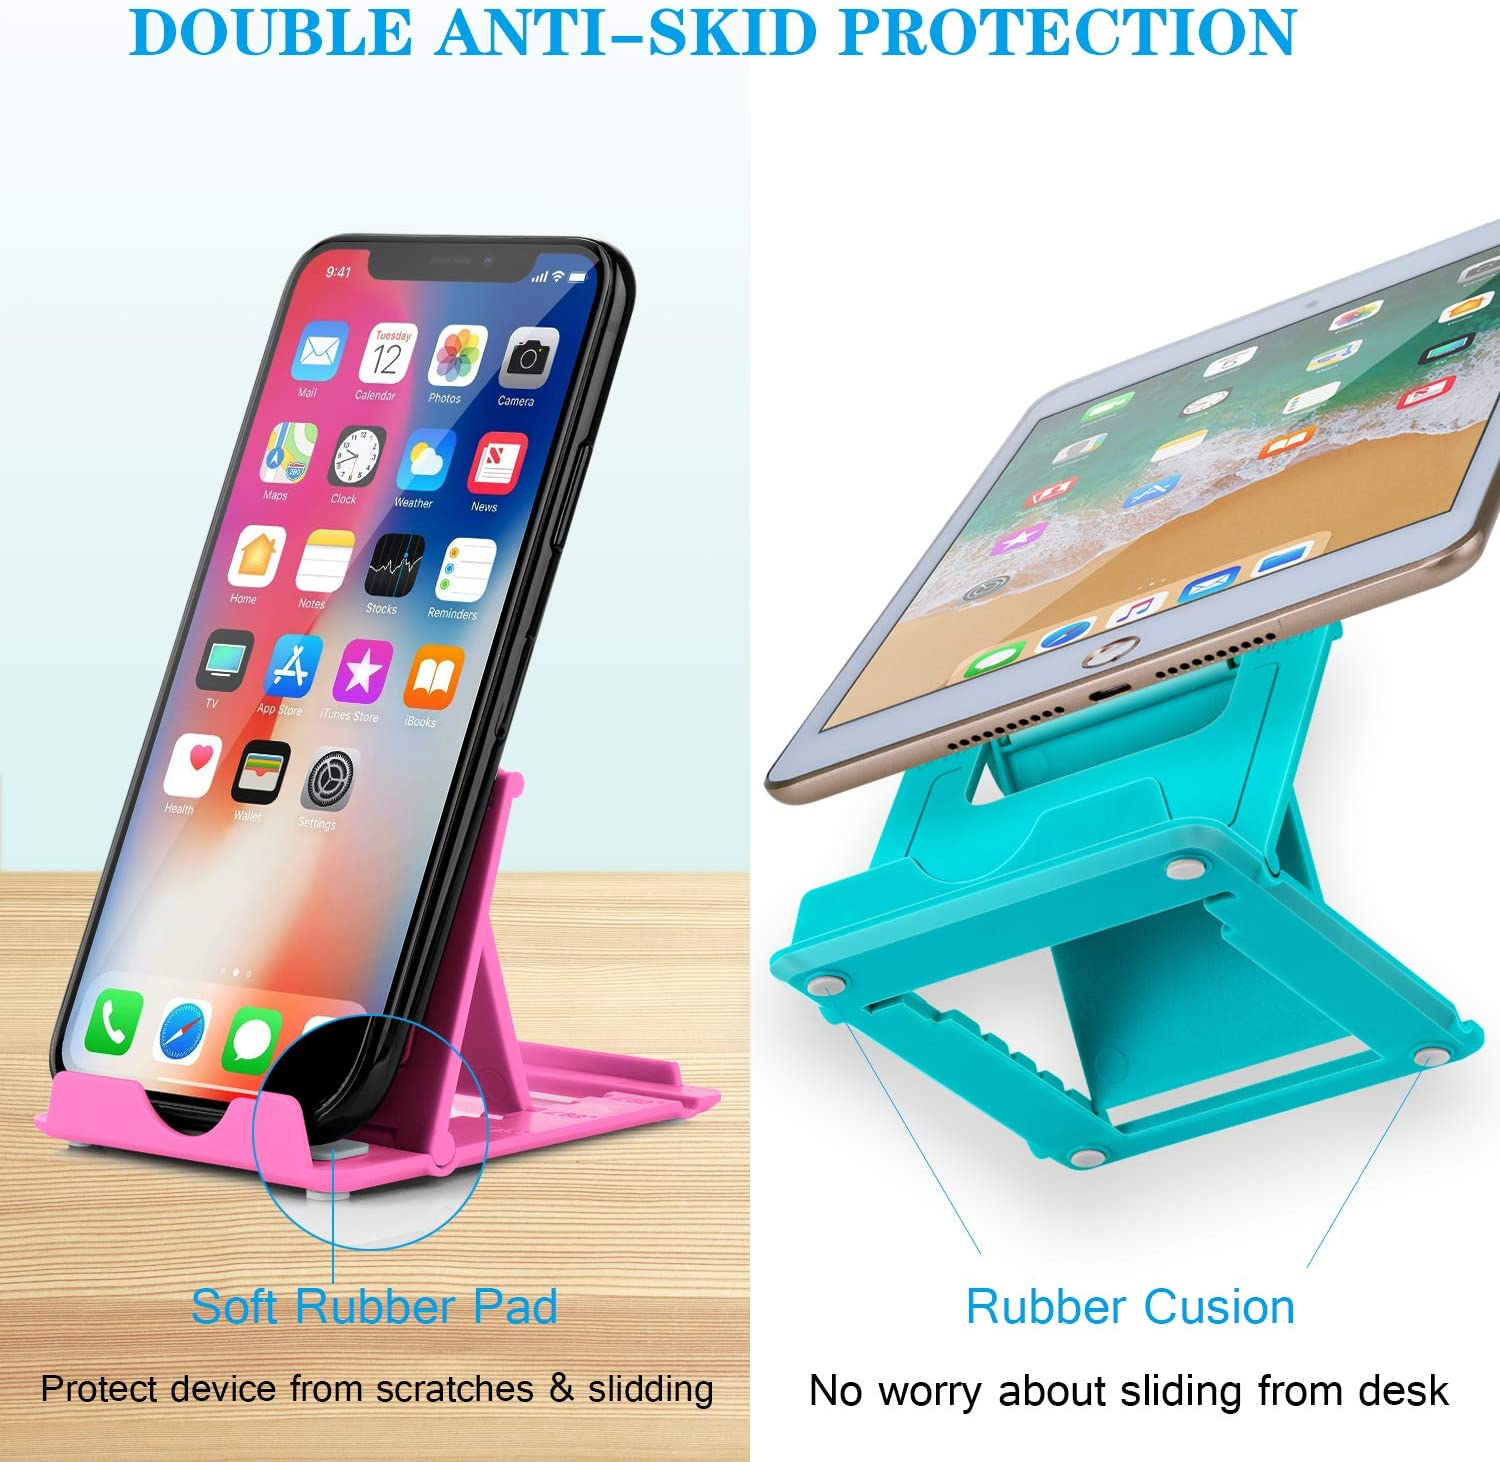 Phone Stand 4-7.9 2Pack Cellphone Holder Tablet stands Foldable Multi-angle for desk lightweight Desktop Dock Cradle Compatible for iPhone Xs Max XR 8 Plus 6 7 6S X 5 Samsung Galaxy S10 S9 S8 S7 Edg